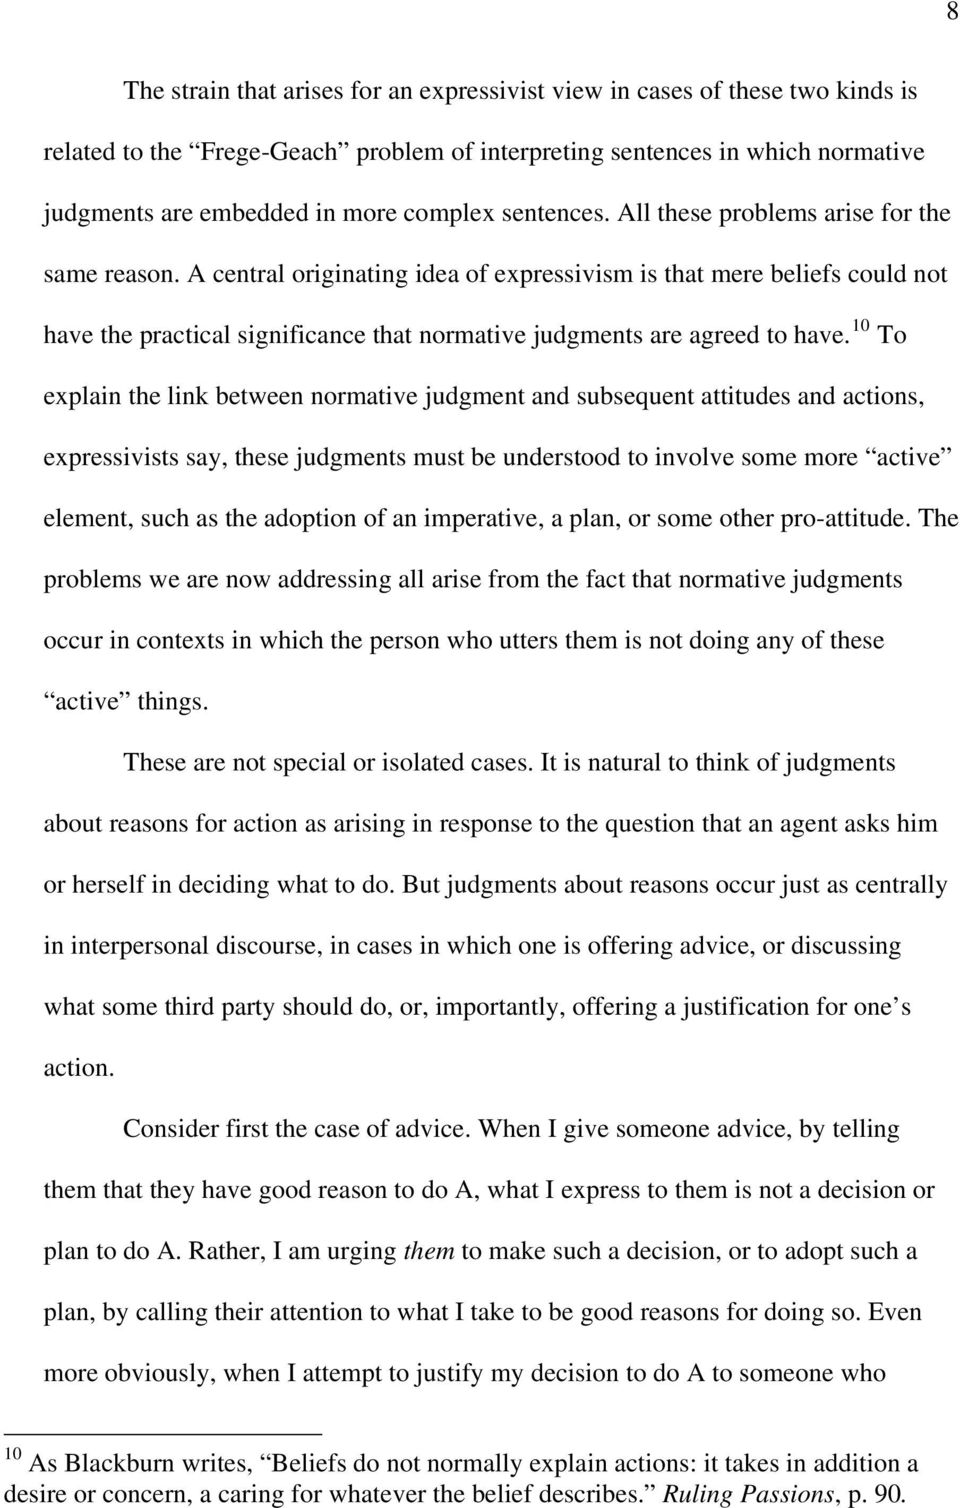 A central originating idea of expressivism is that mere beliefs could not have the practical significance that normative judgments are agreed to have.